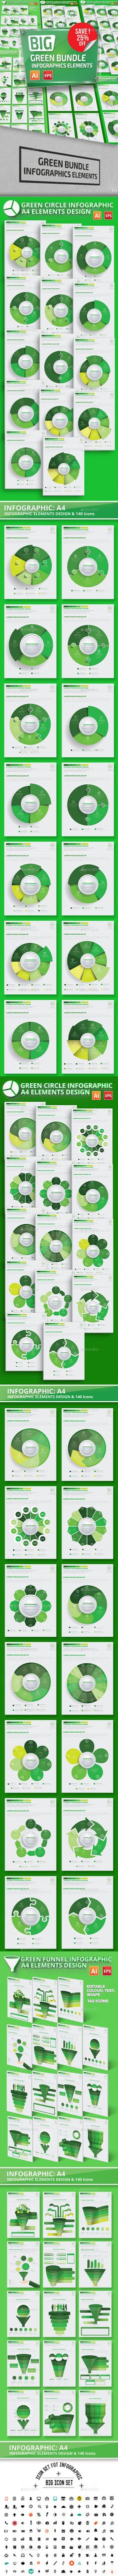 Bundle Green Infographic Elements - Infographics | DOWNLOAD : https://graphicriver.net/item/bundle-green-infographic-elements/20307562?ref=sinzo